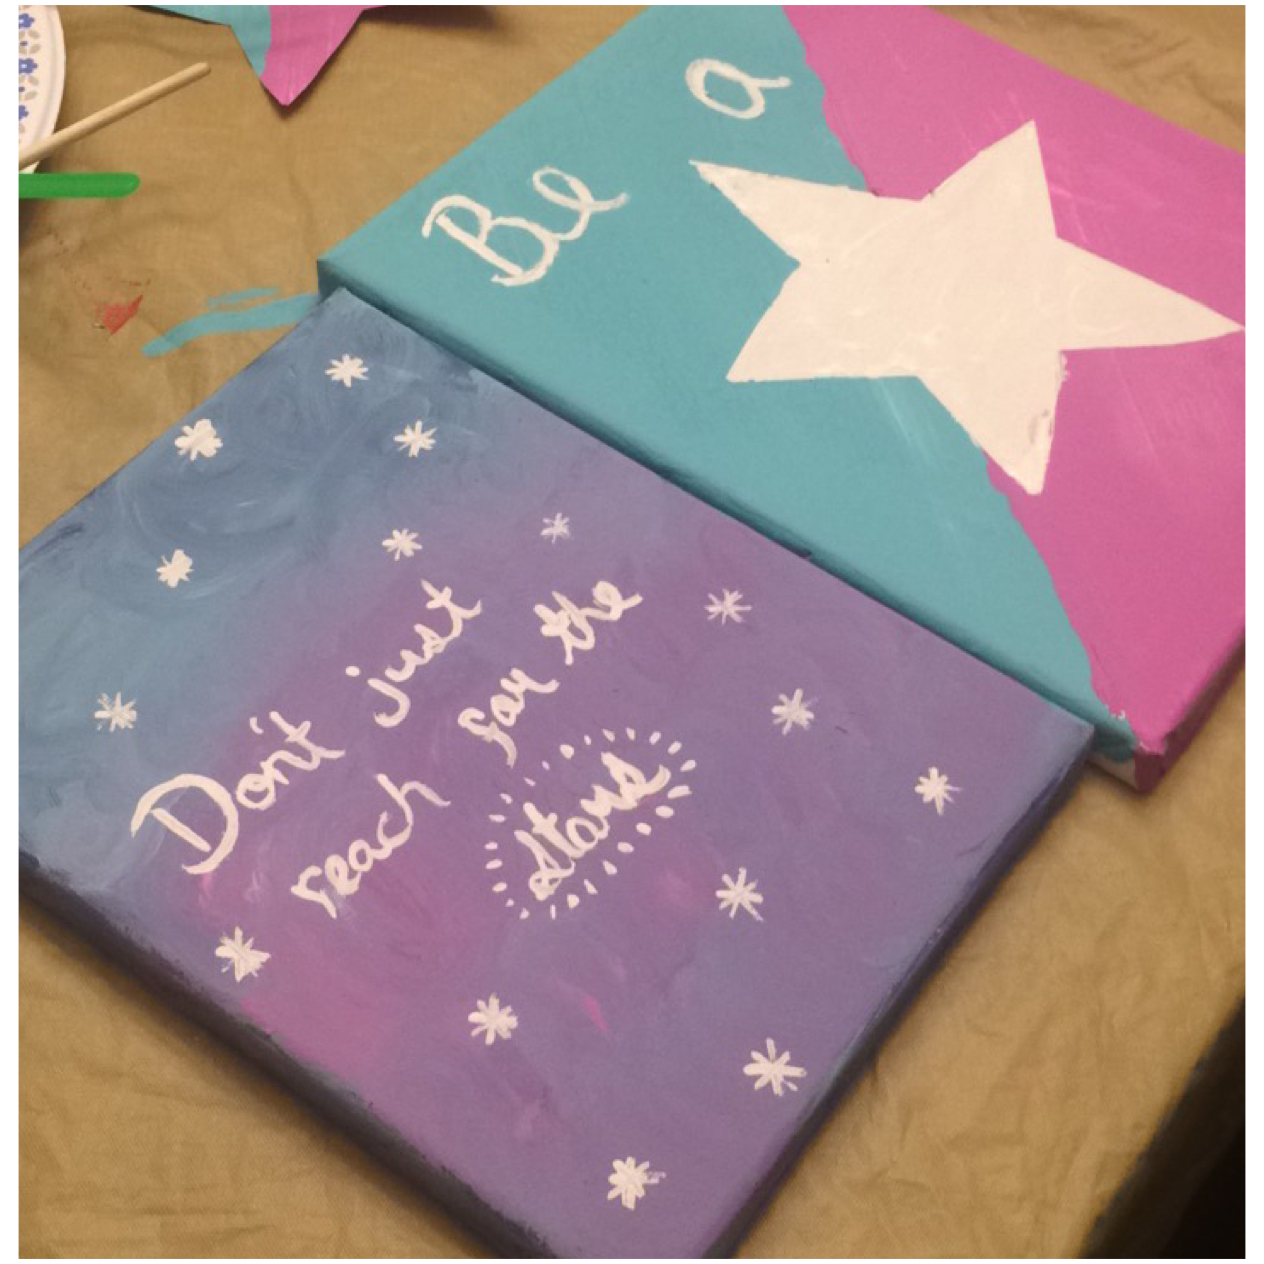 A mother-daughter painting activity, that promotes bonding and character development.